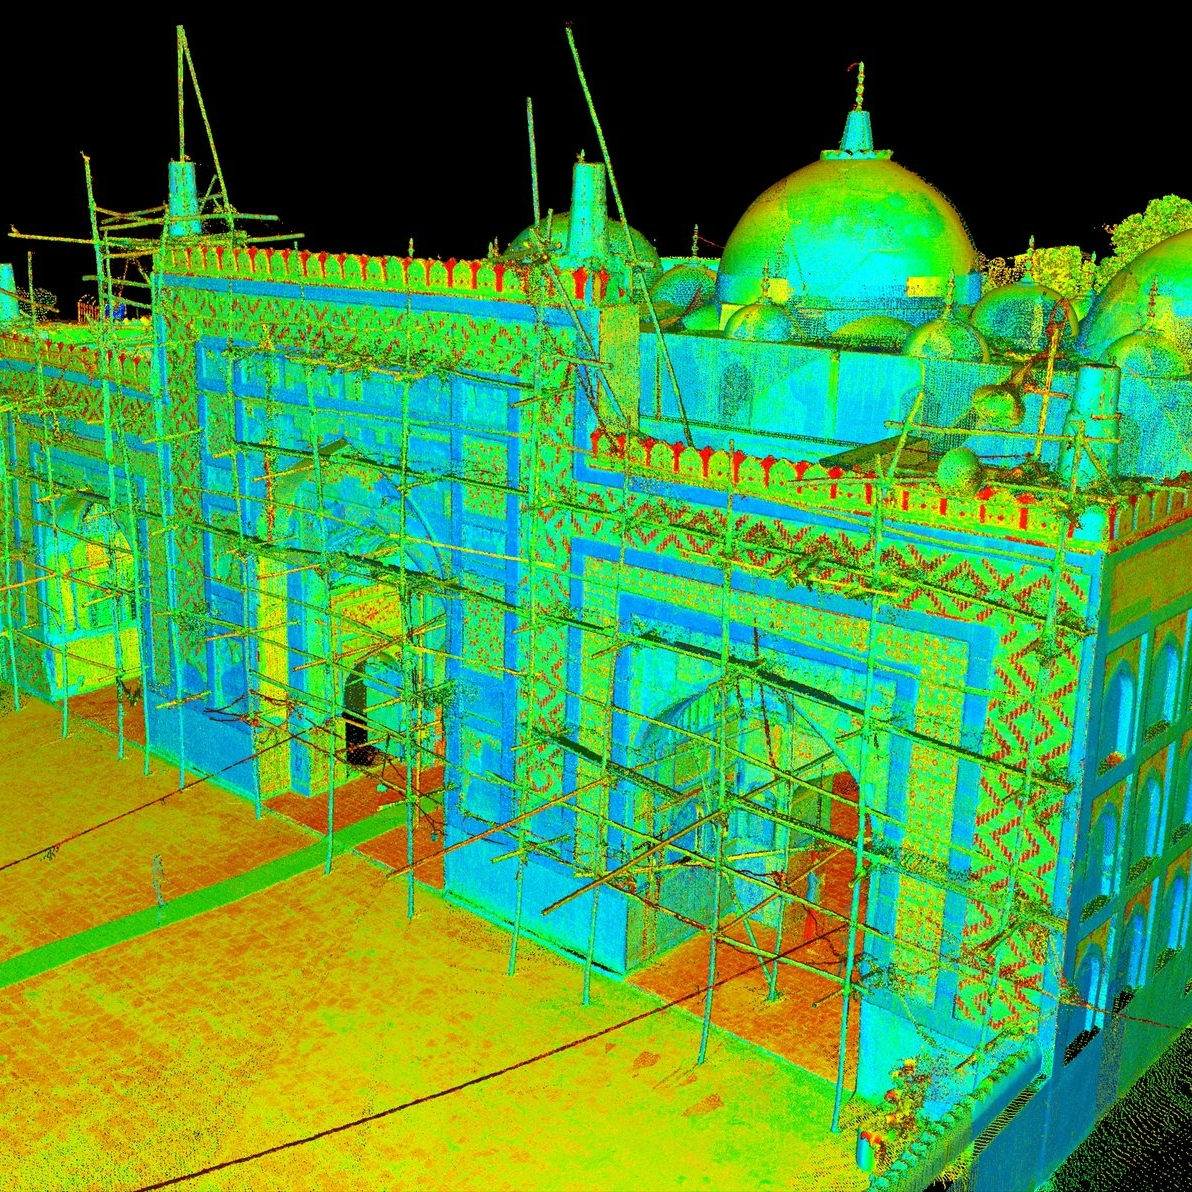 Digital Documentation of 10 World Heritage Sites